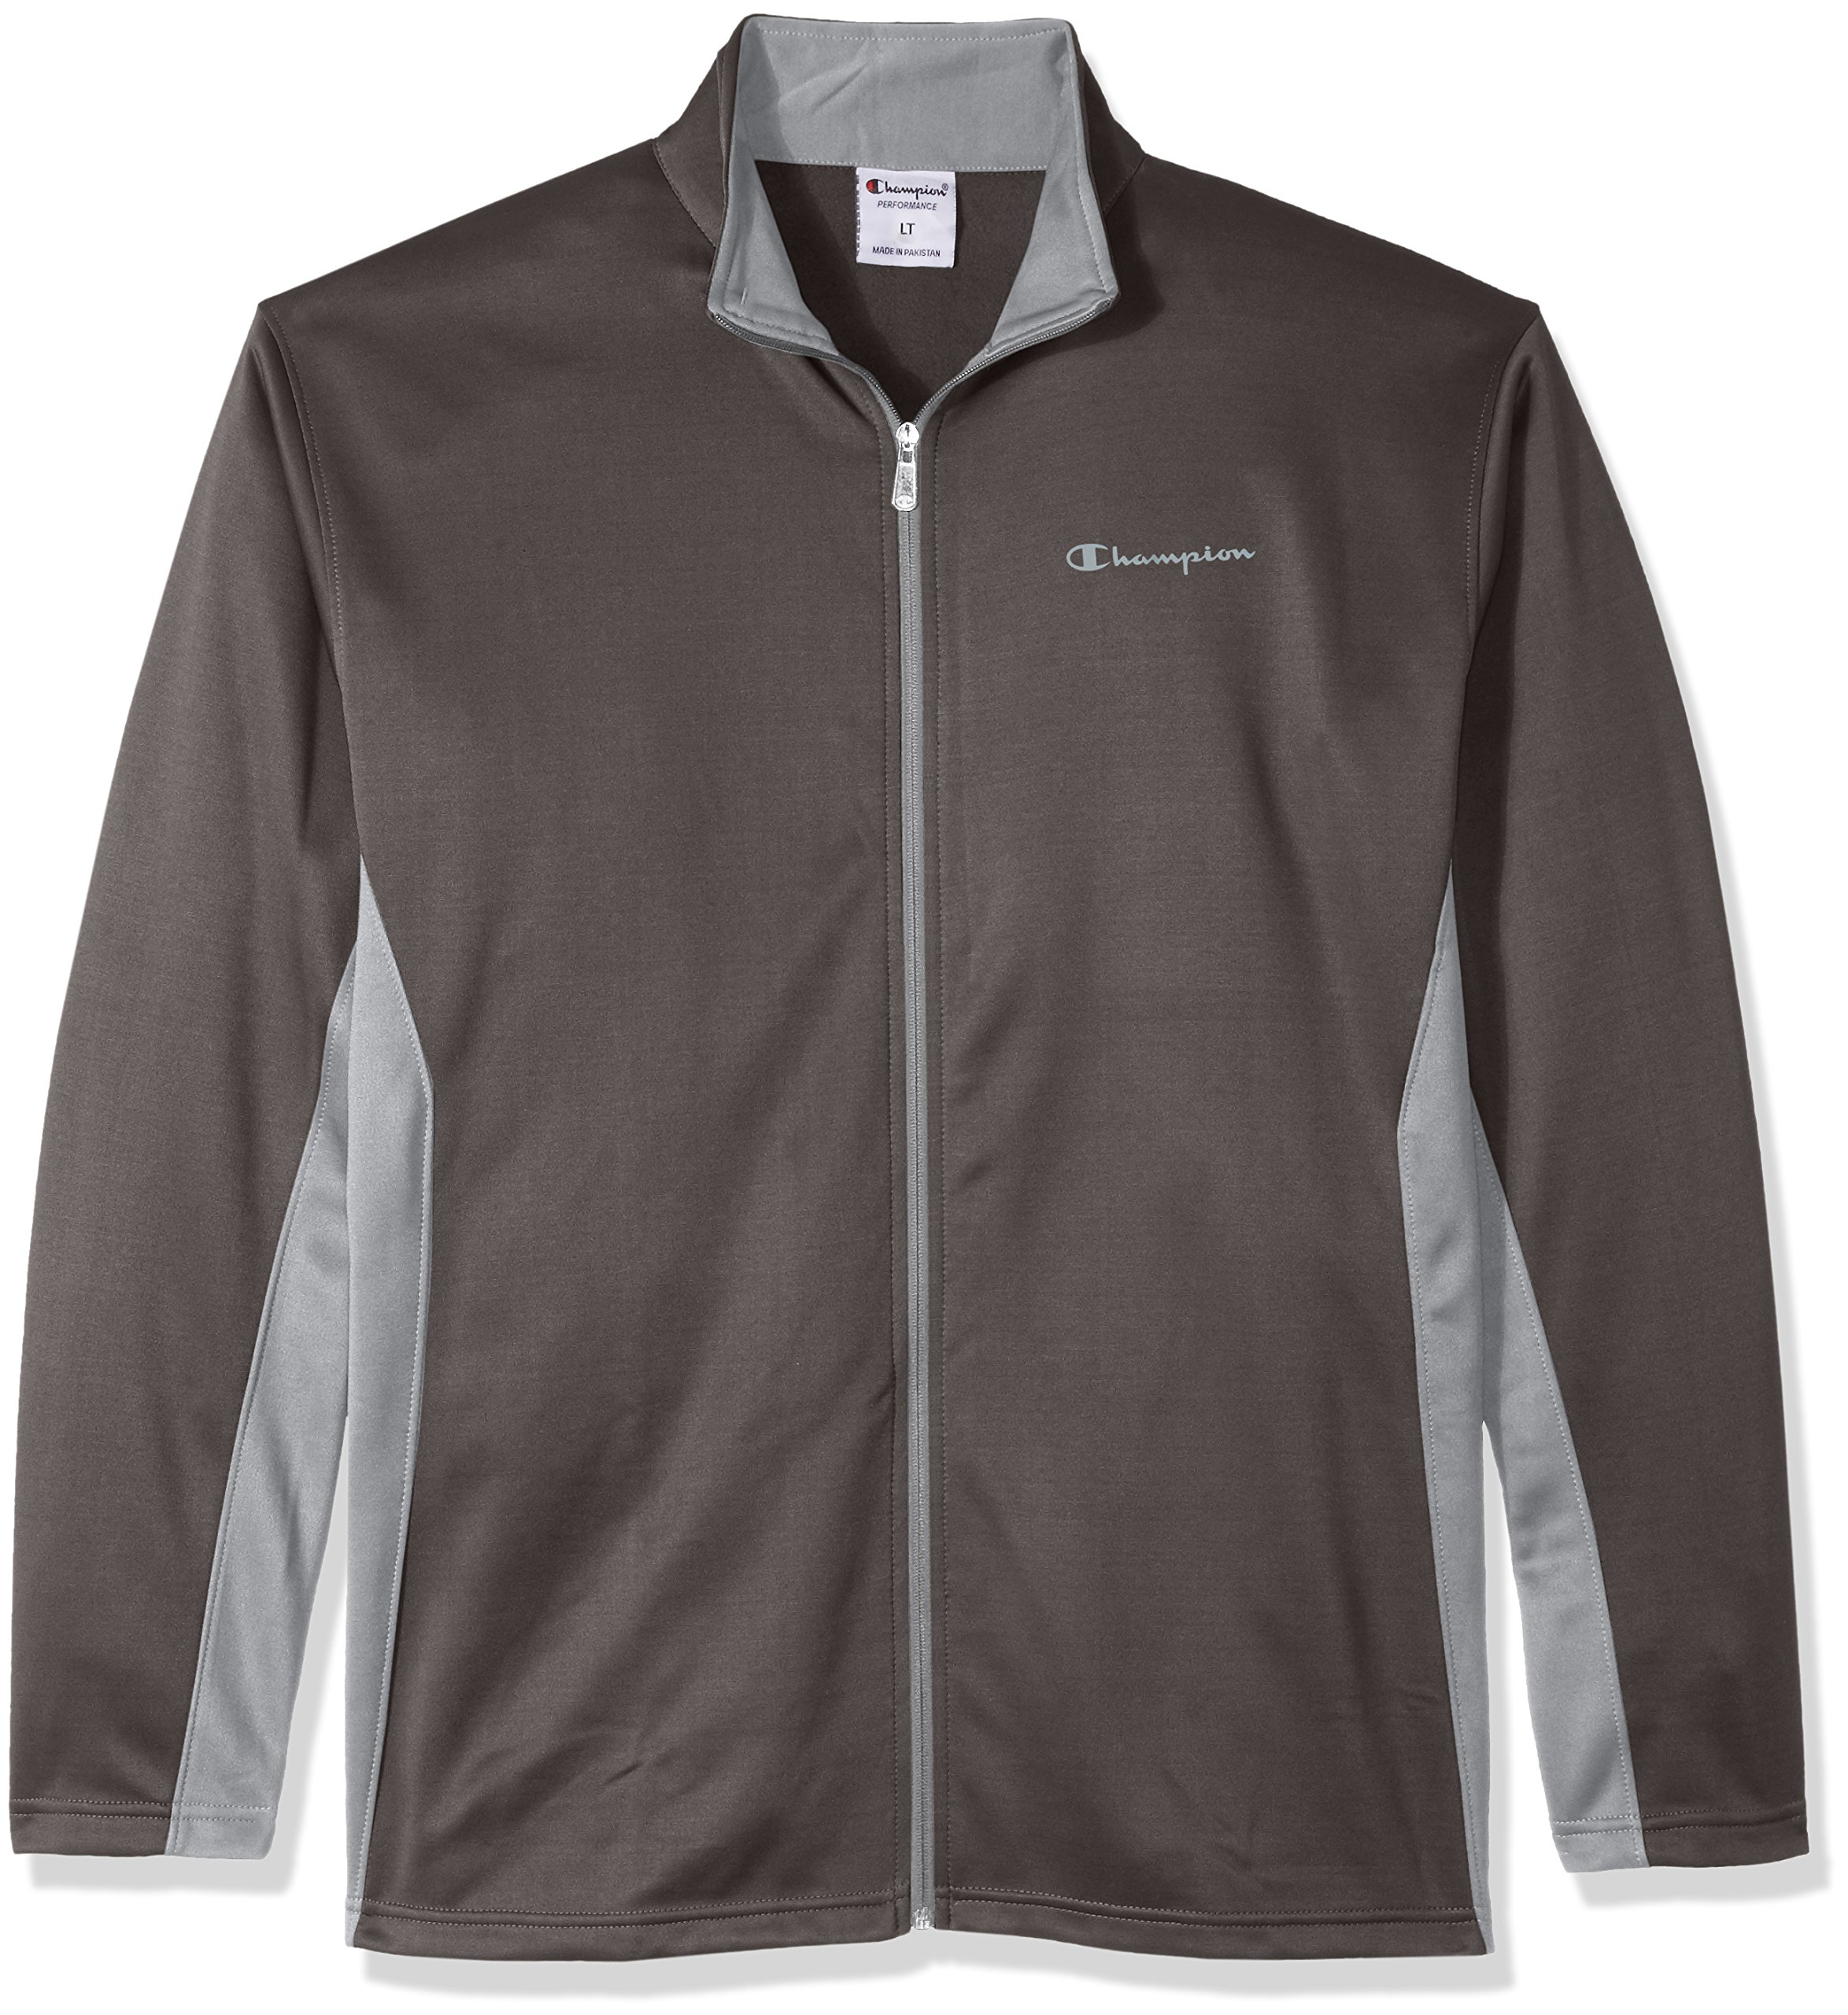 Champion Men's Big and Tall Full C-Vapor with Side Panel Contrast Zip, Stealth/Concrete, 2XT